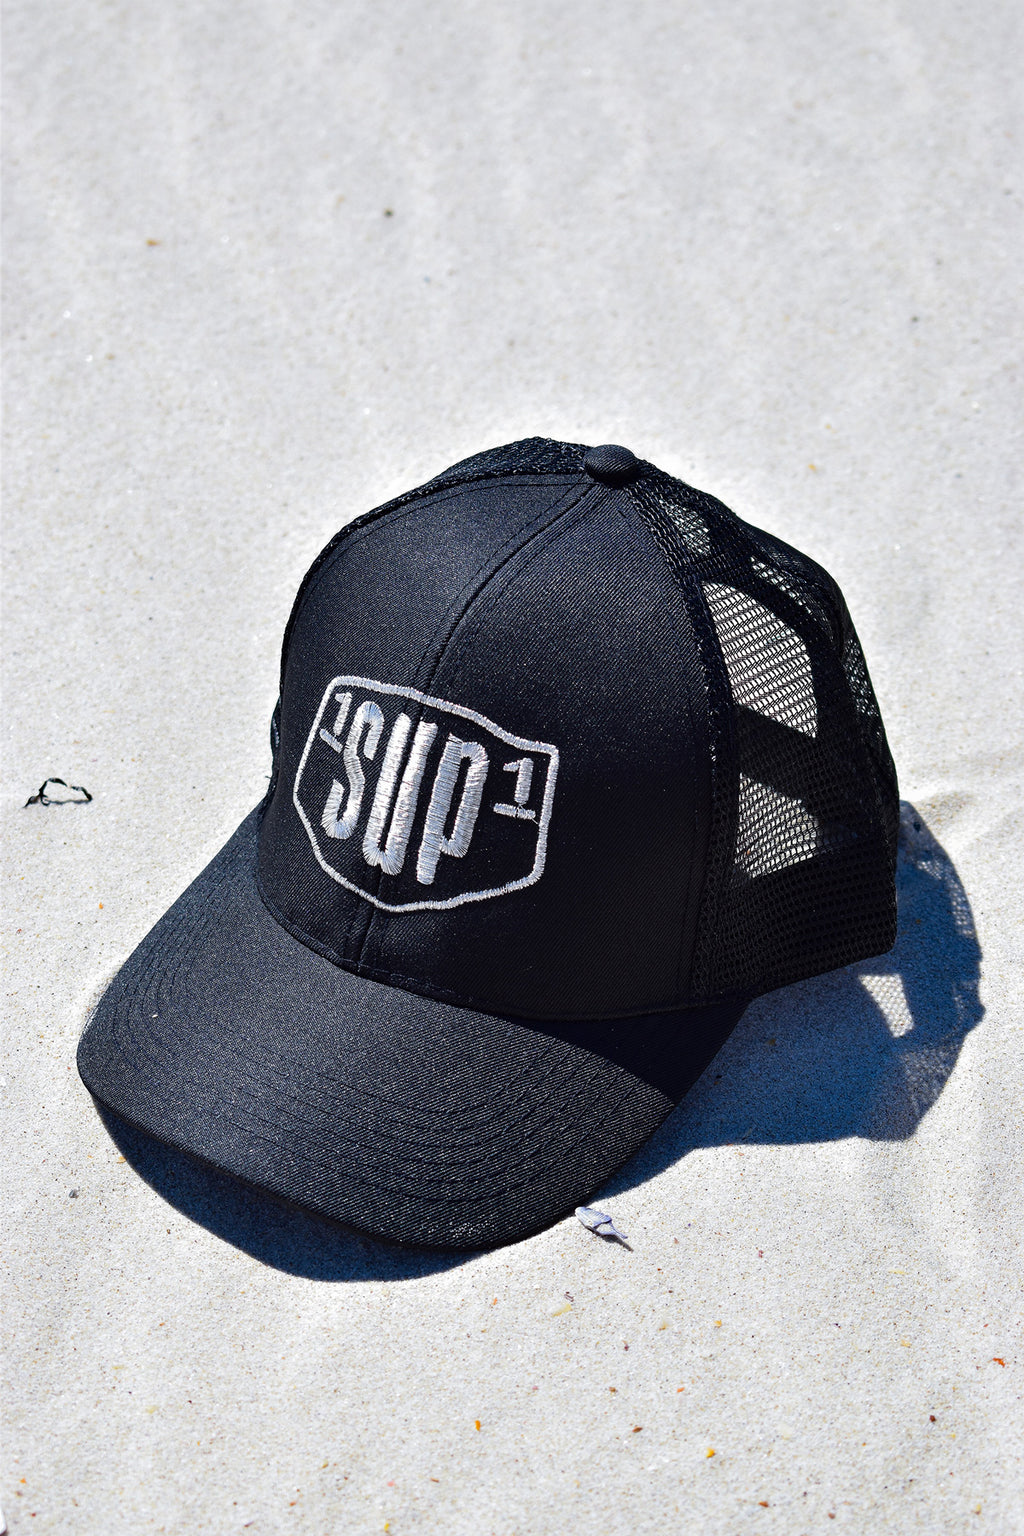 1SUP1 Baseball Cap (Black)